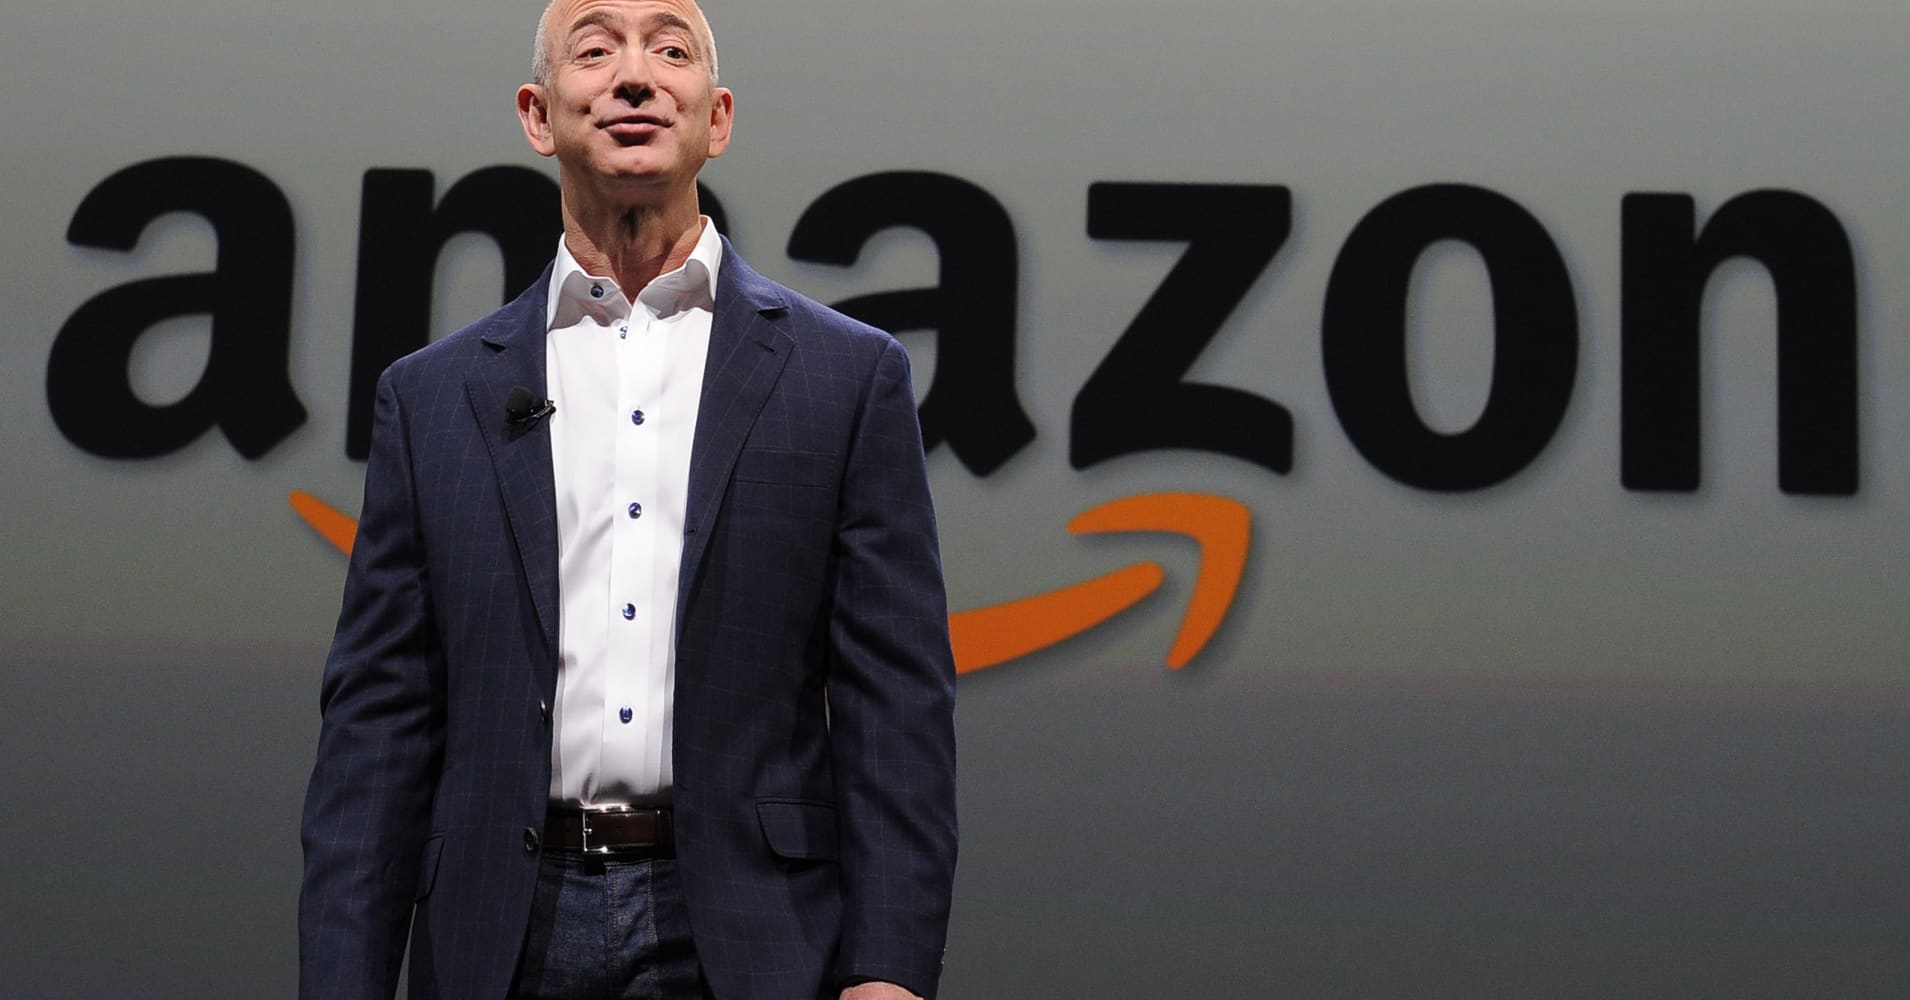 Amazon CEO Jeff Bezos: Find hires who are 'a little bit annoying'